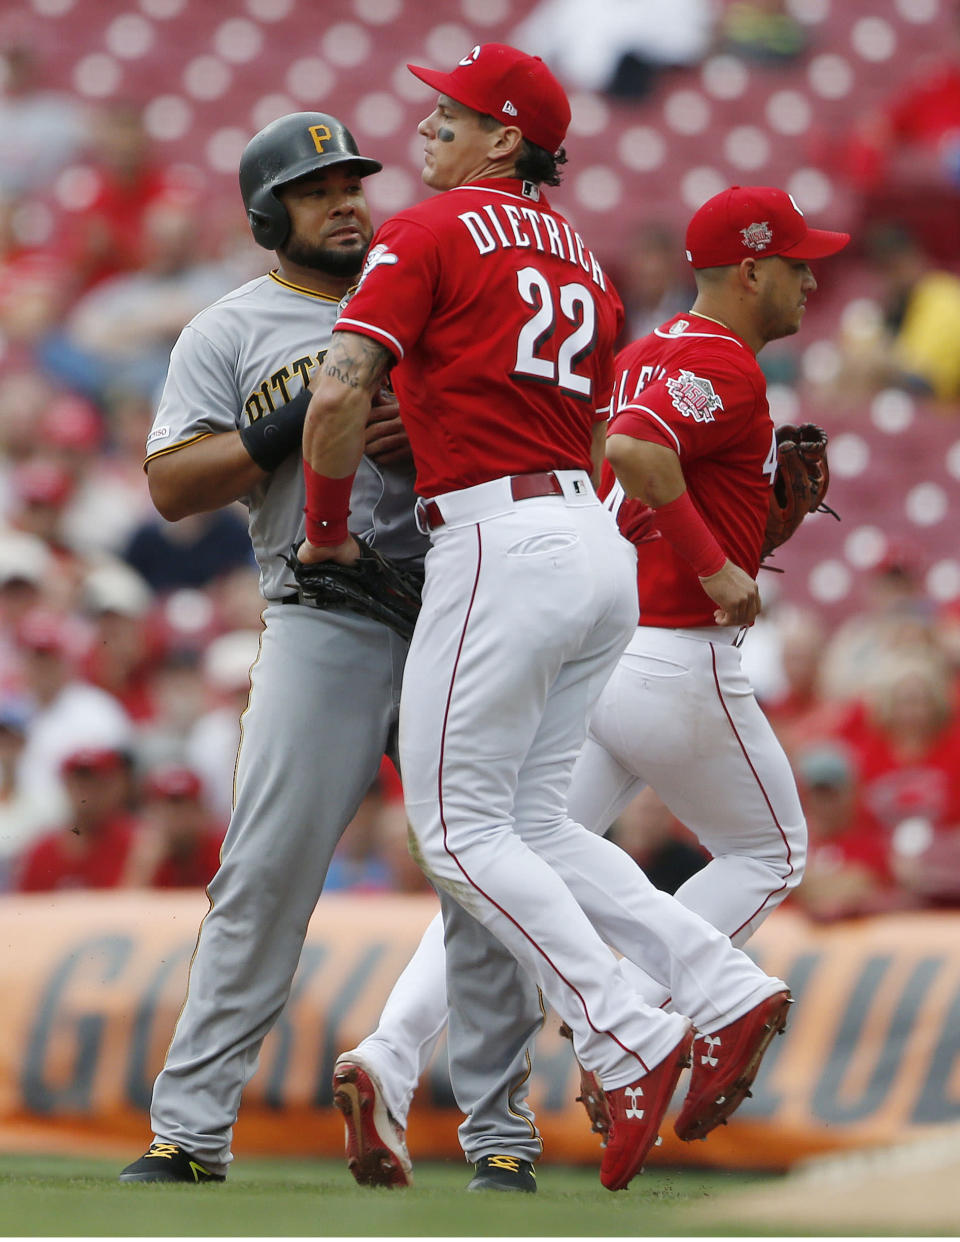 Pittsburgh Pirates Melky Cabrera, left, is tagged out in a rundown by Cincinnati Reds first baseman Derek Dietrich (22) on a ball off the bat of Colin Moran during the fourth inning of a baseball game, Wednesday, May 29, 2019, in Cincinnati. (AP Photo/Gary Landers)